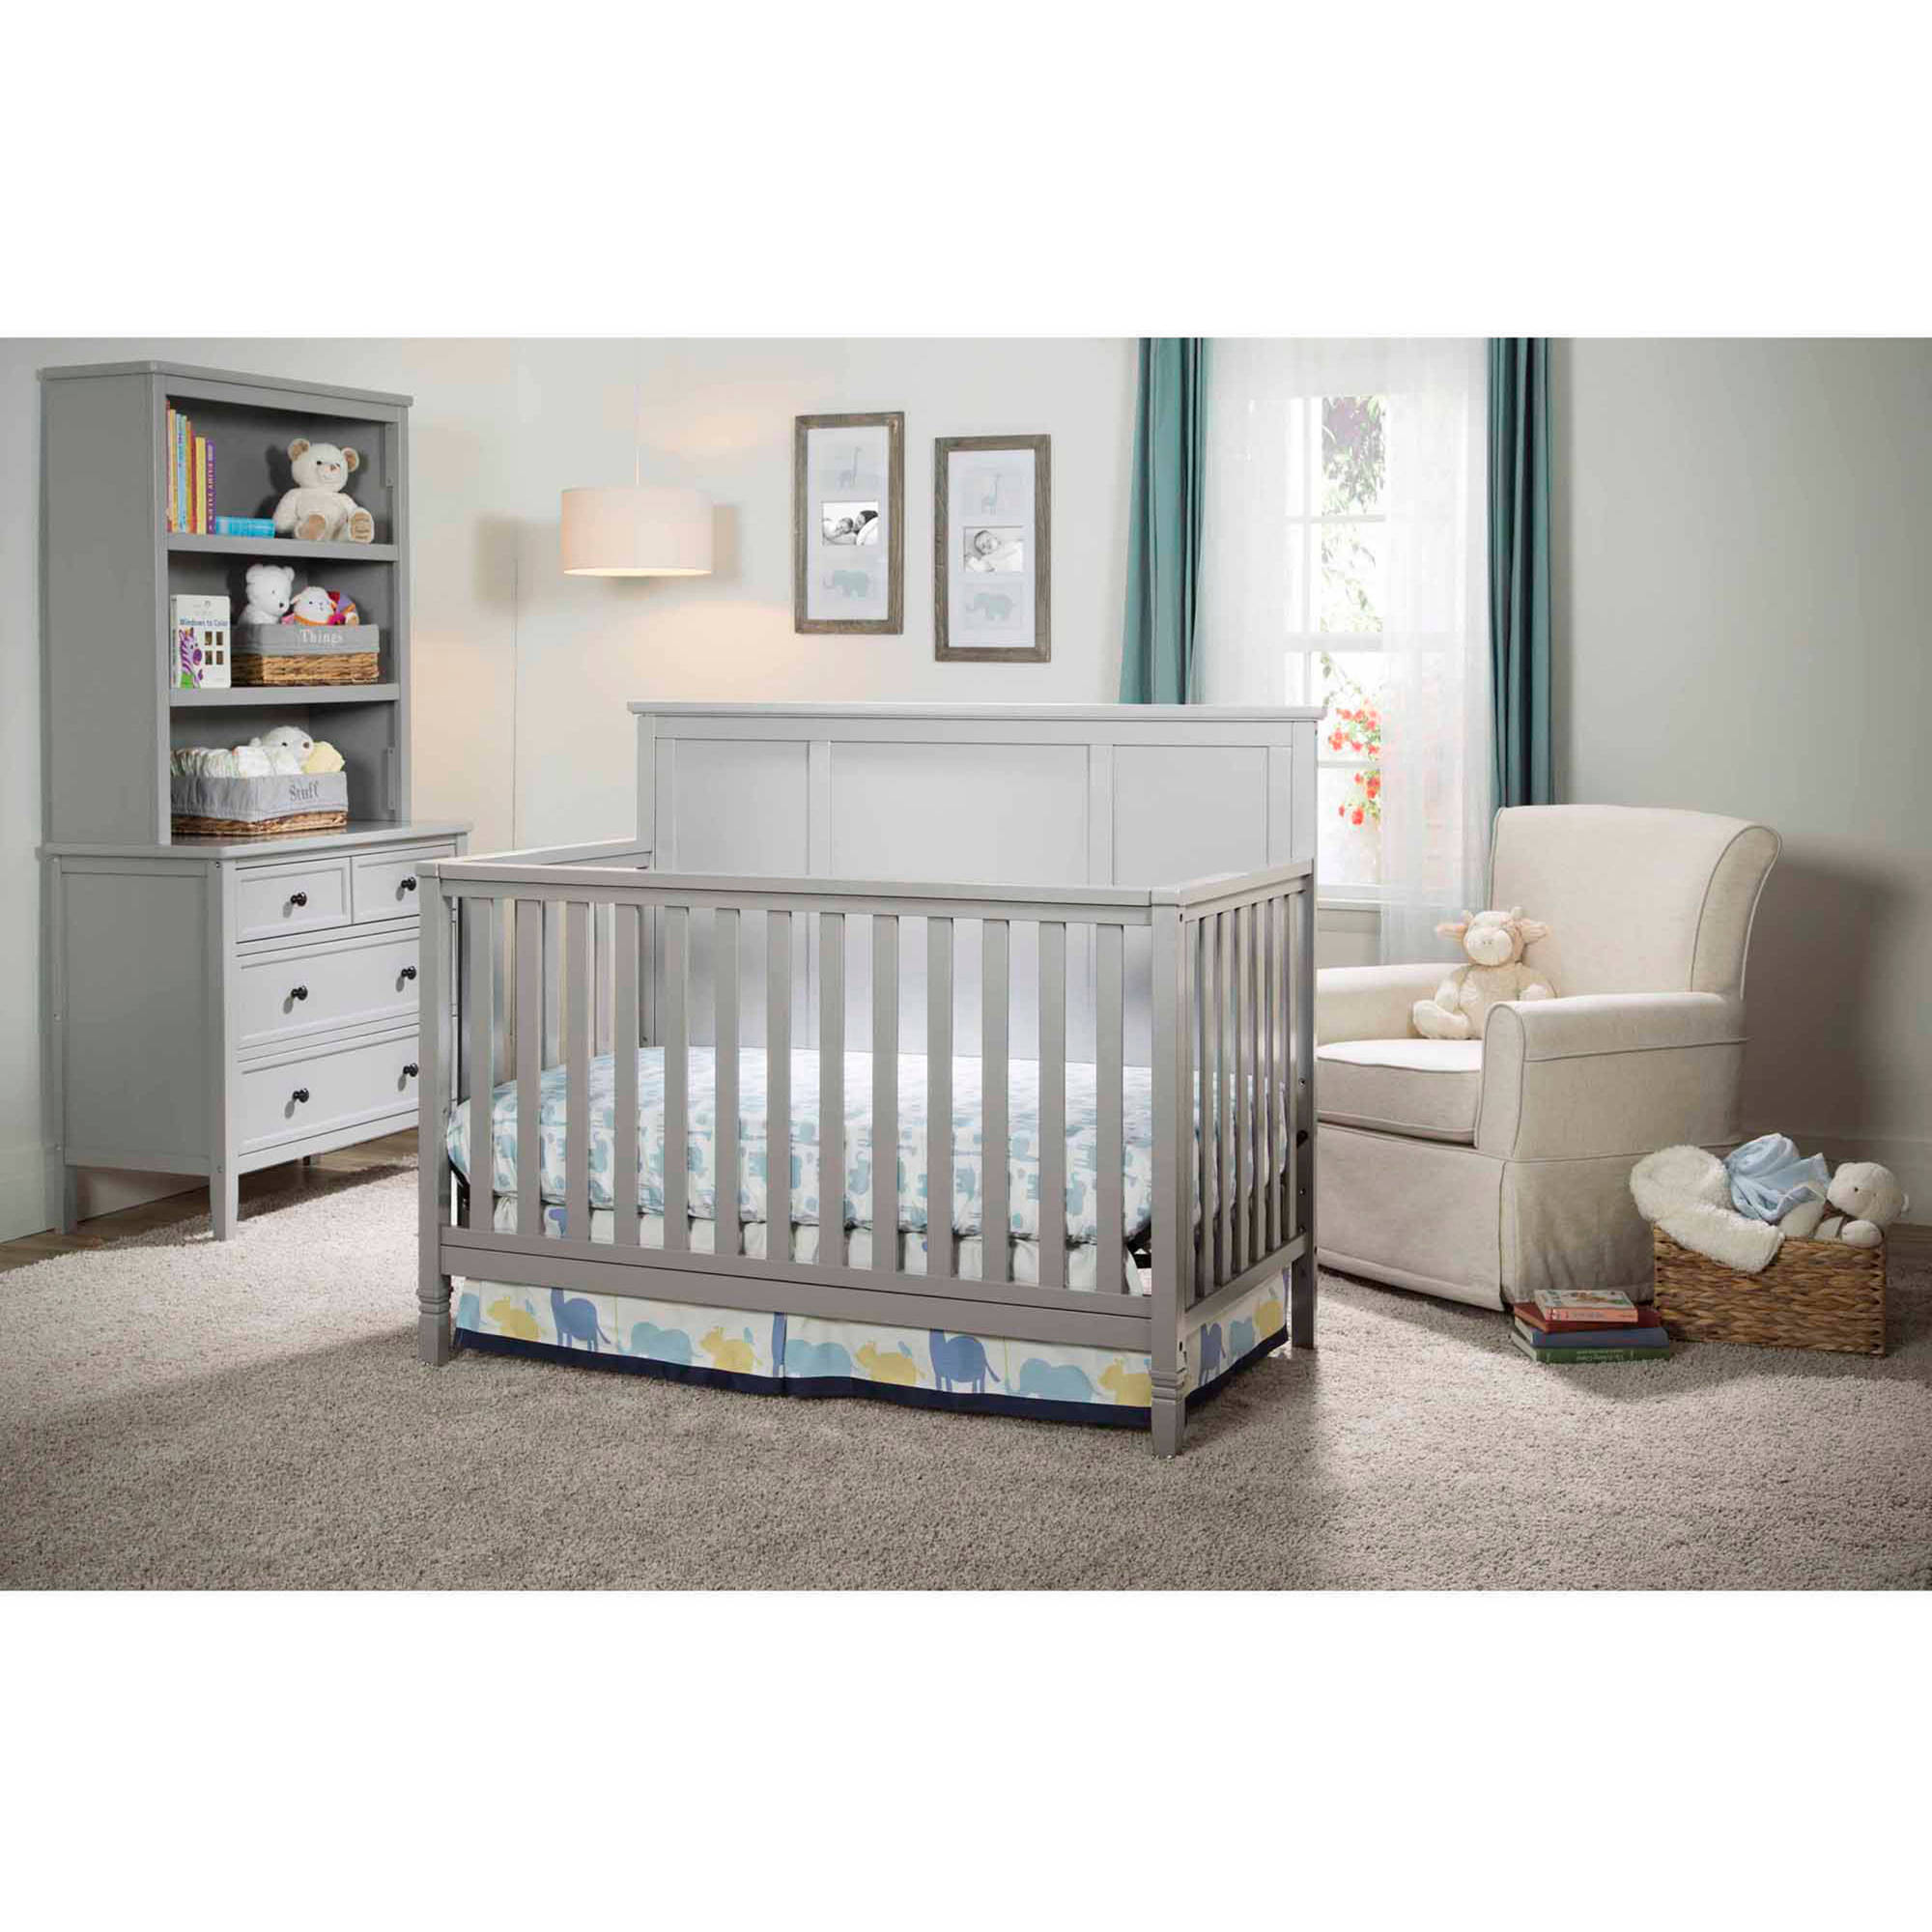 Baby cribs at walmart canada baby cribs at walmart canada 7